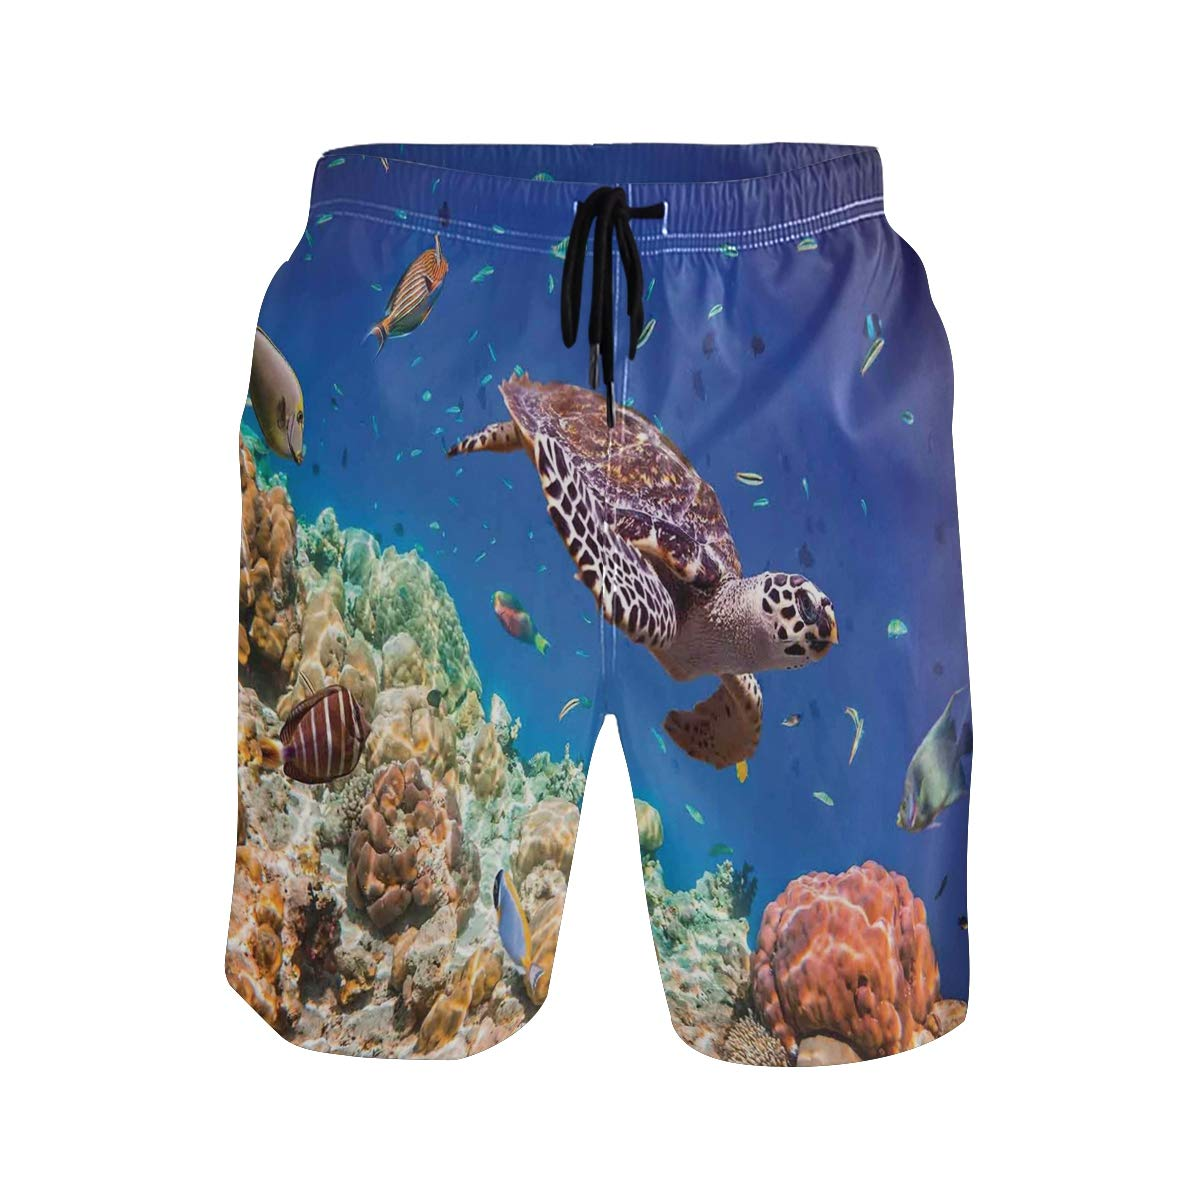 COVASA Mens Summer ShortsLonely Old Tropical Sea Turtle Swimming Shoal Sponges